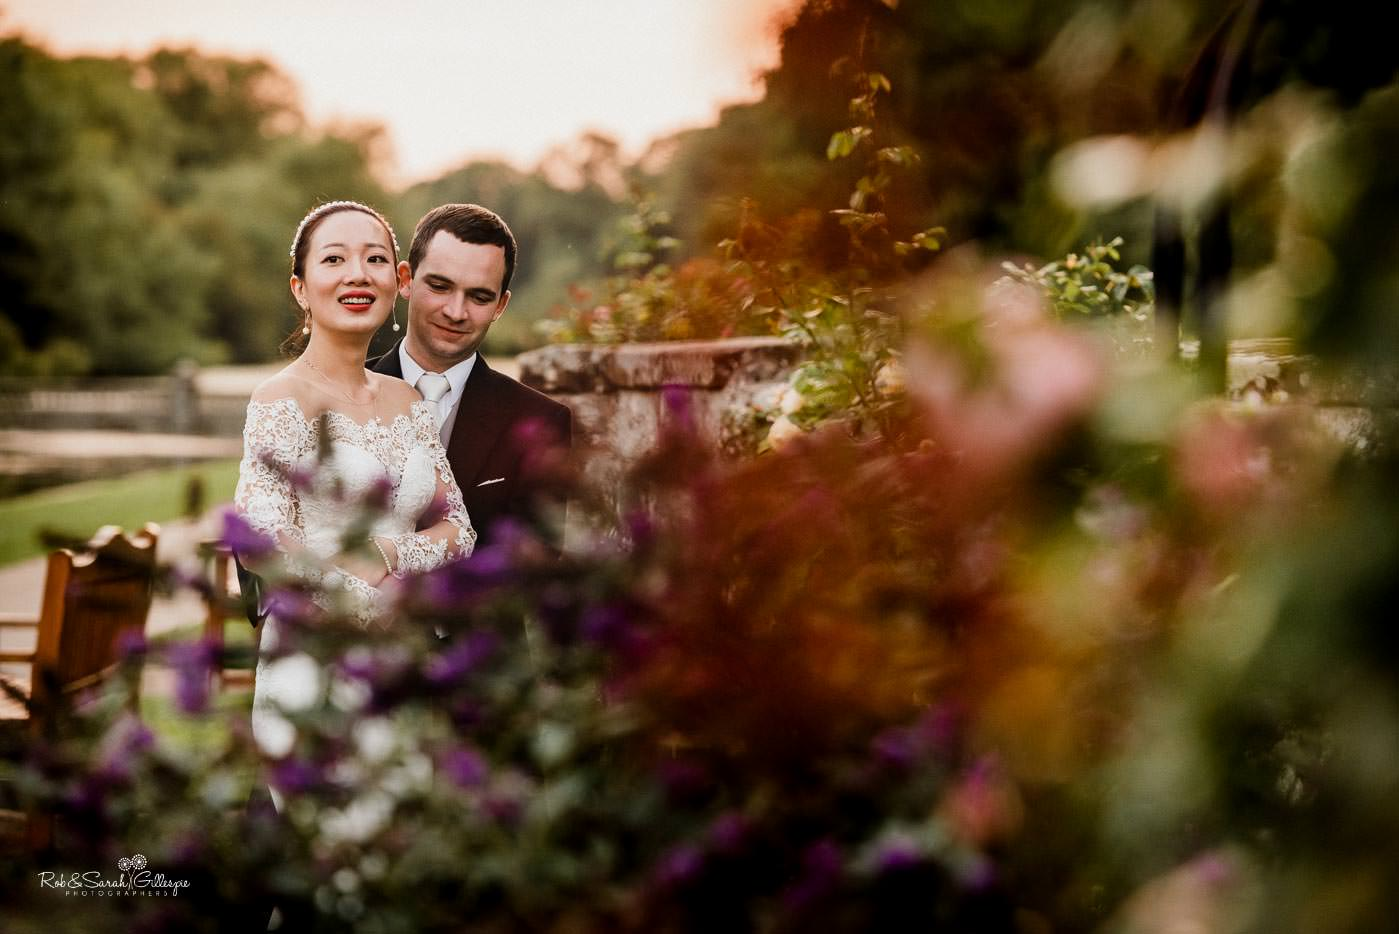 Natural and relaxed bride and groom photos at Coombe Abbey